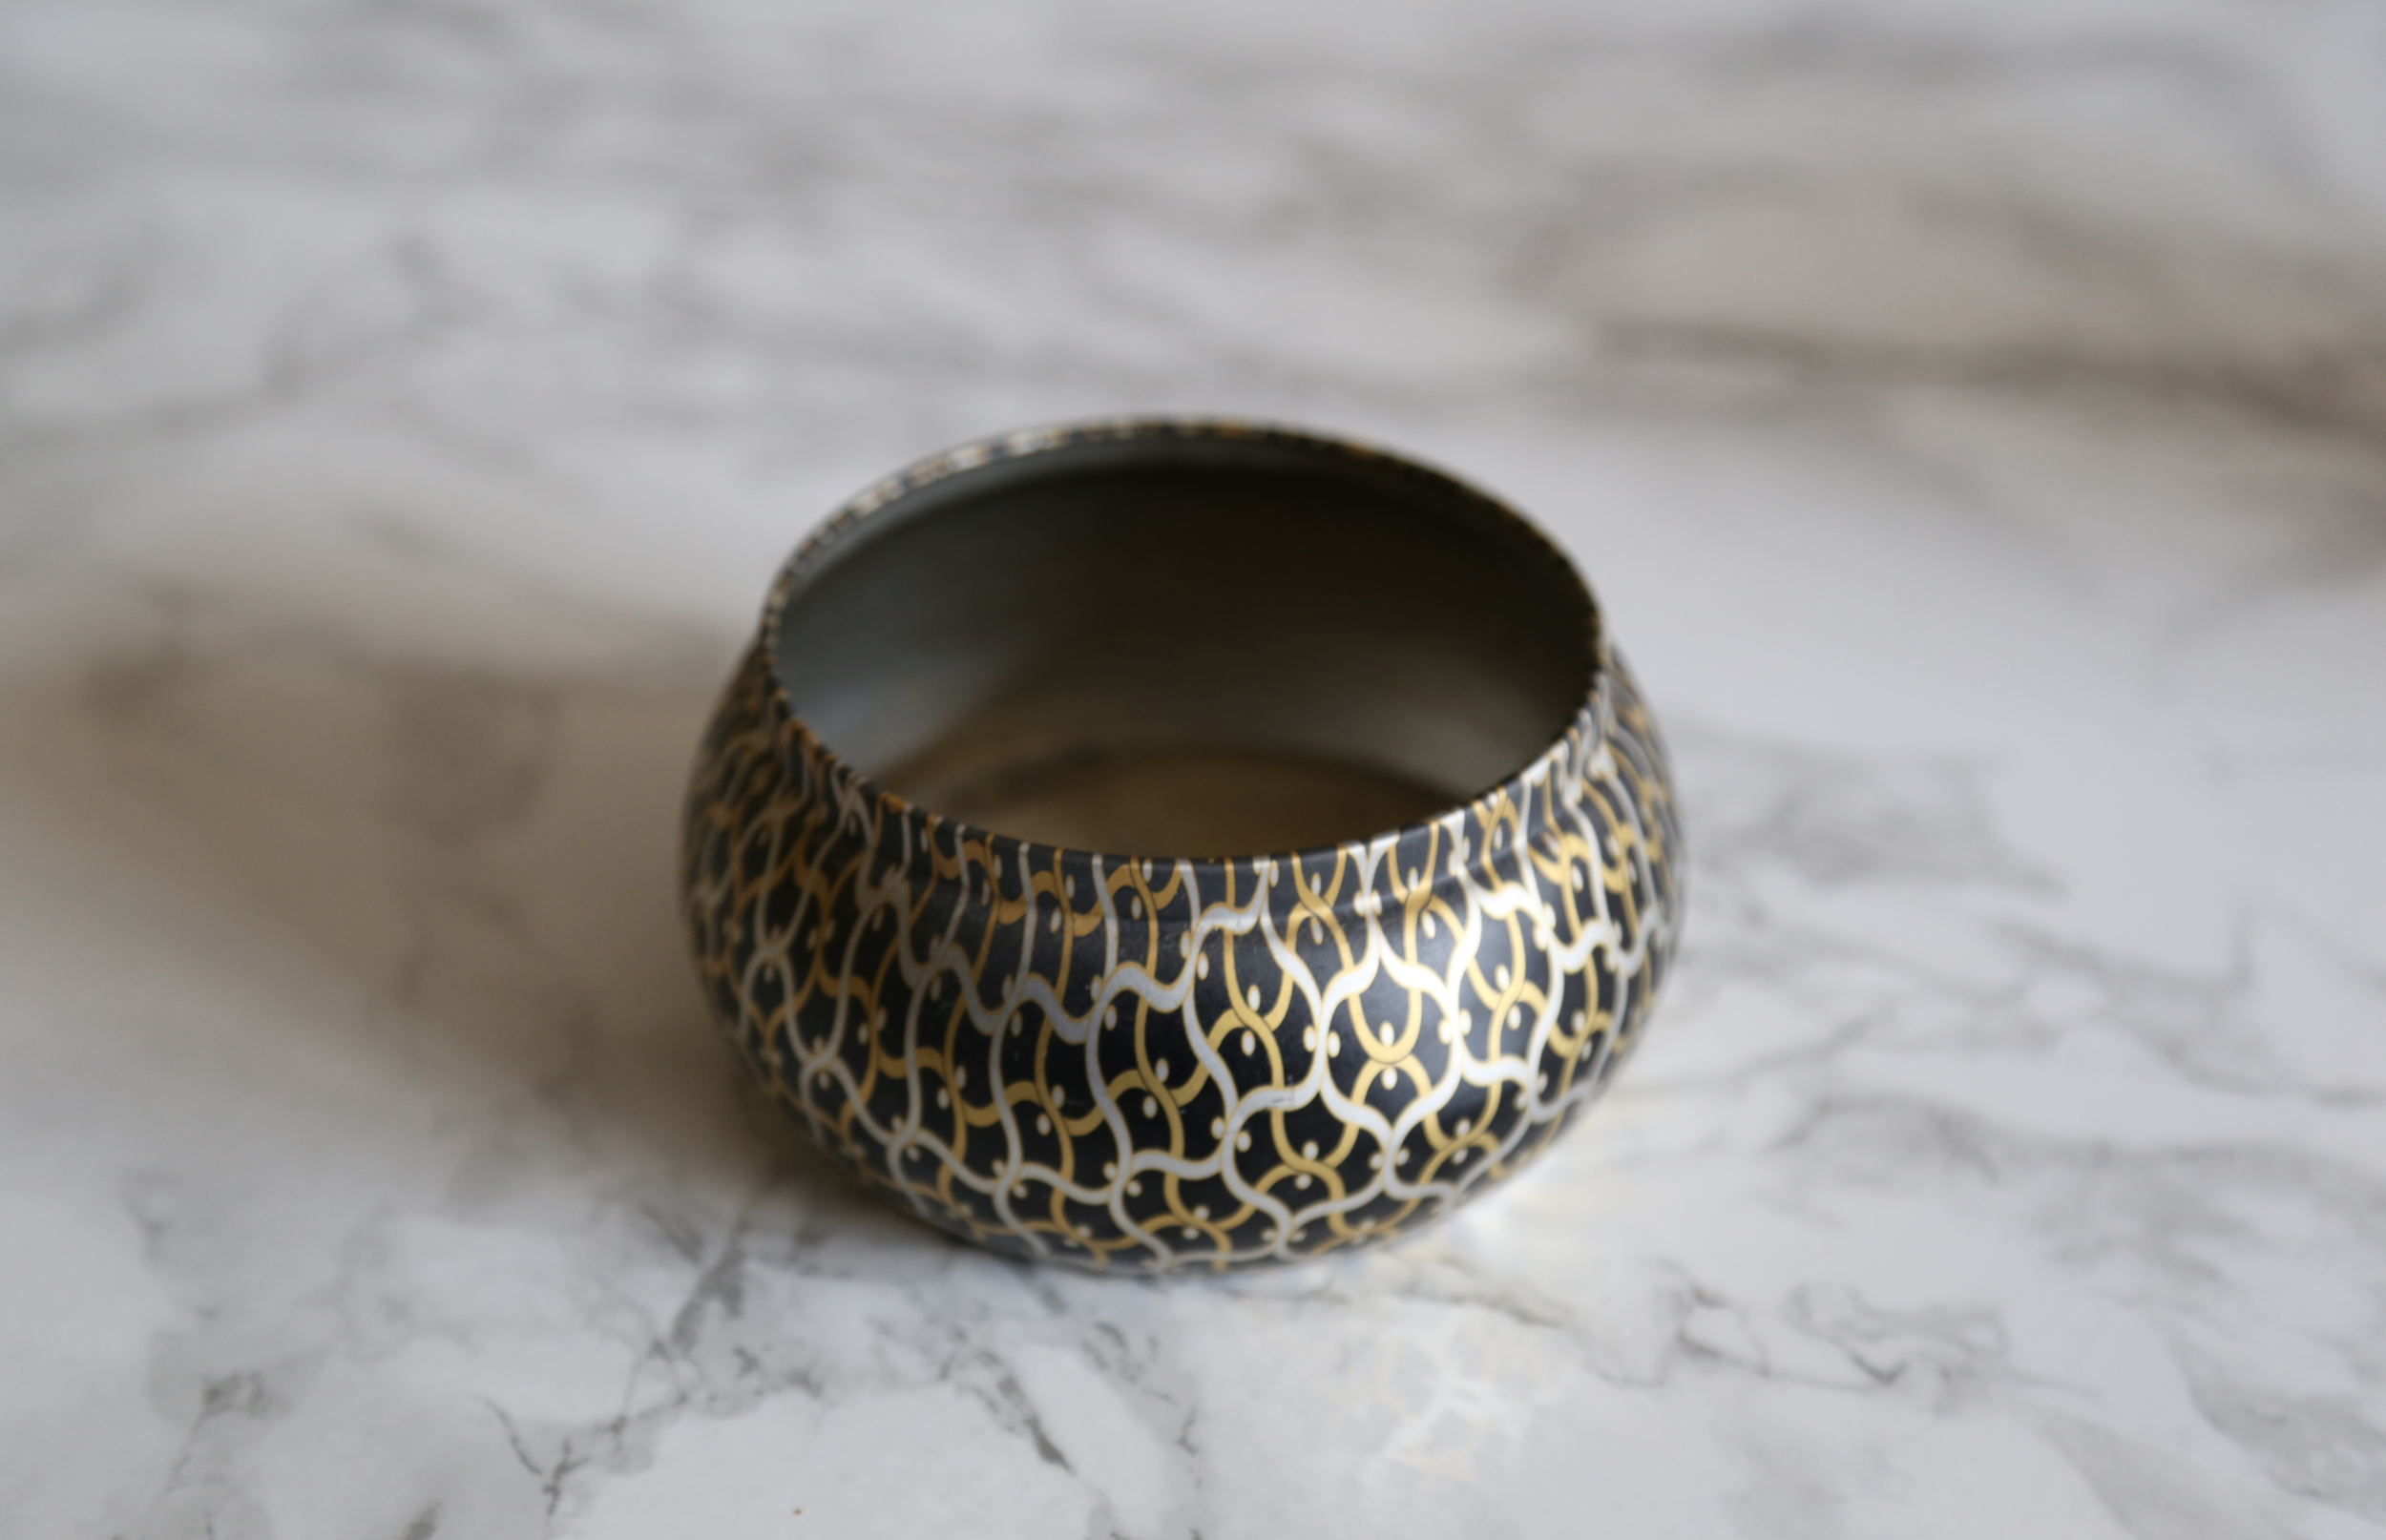 Start with an empty candle. I love  Voluspa  because they have such beautiful designs!